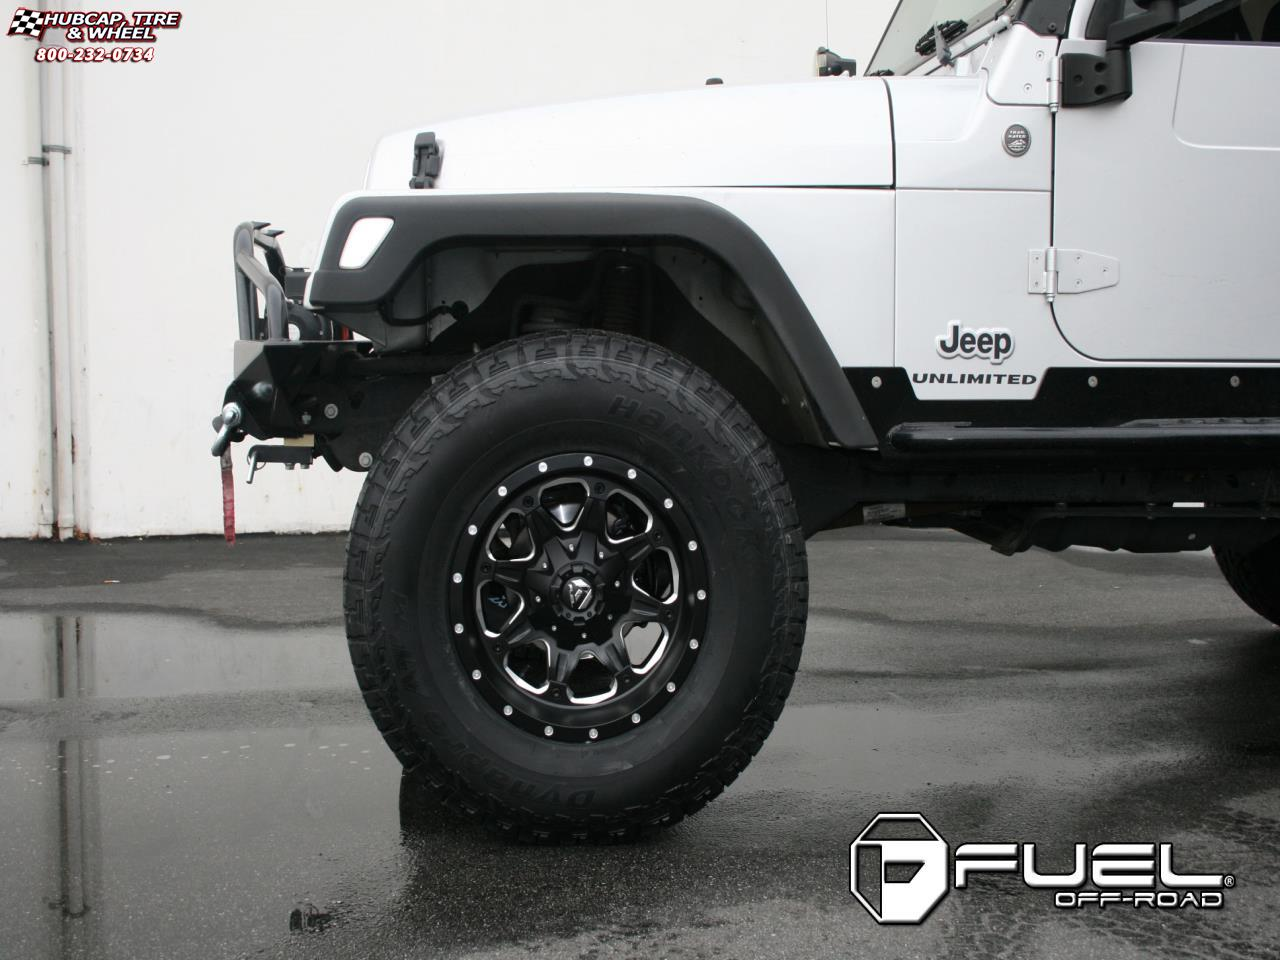 Jeep Wrangler Fuel Boost D534 Wheels Matte Black Milled With 17x9 And Rims